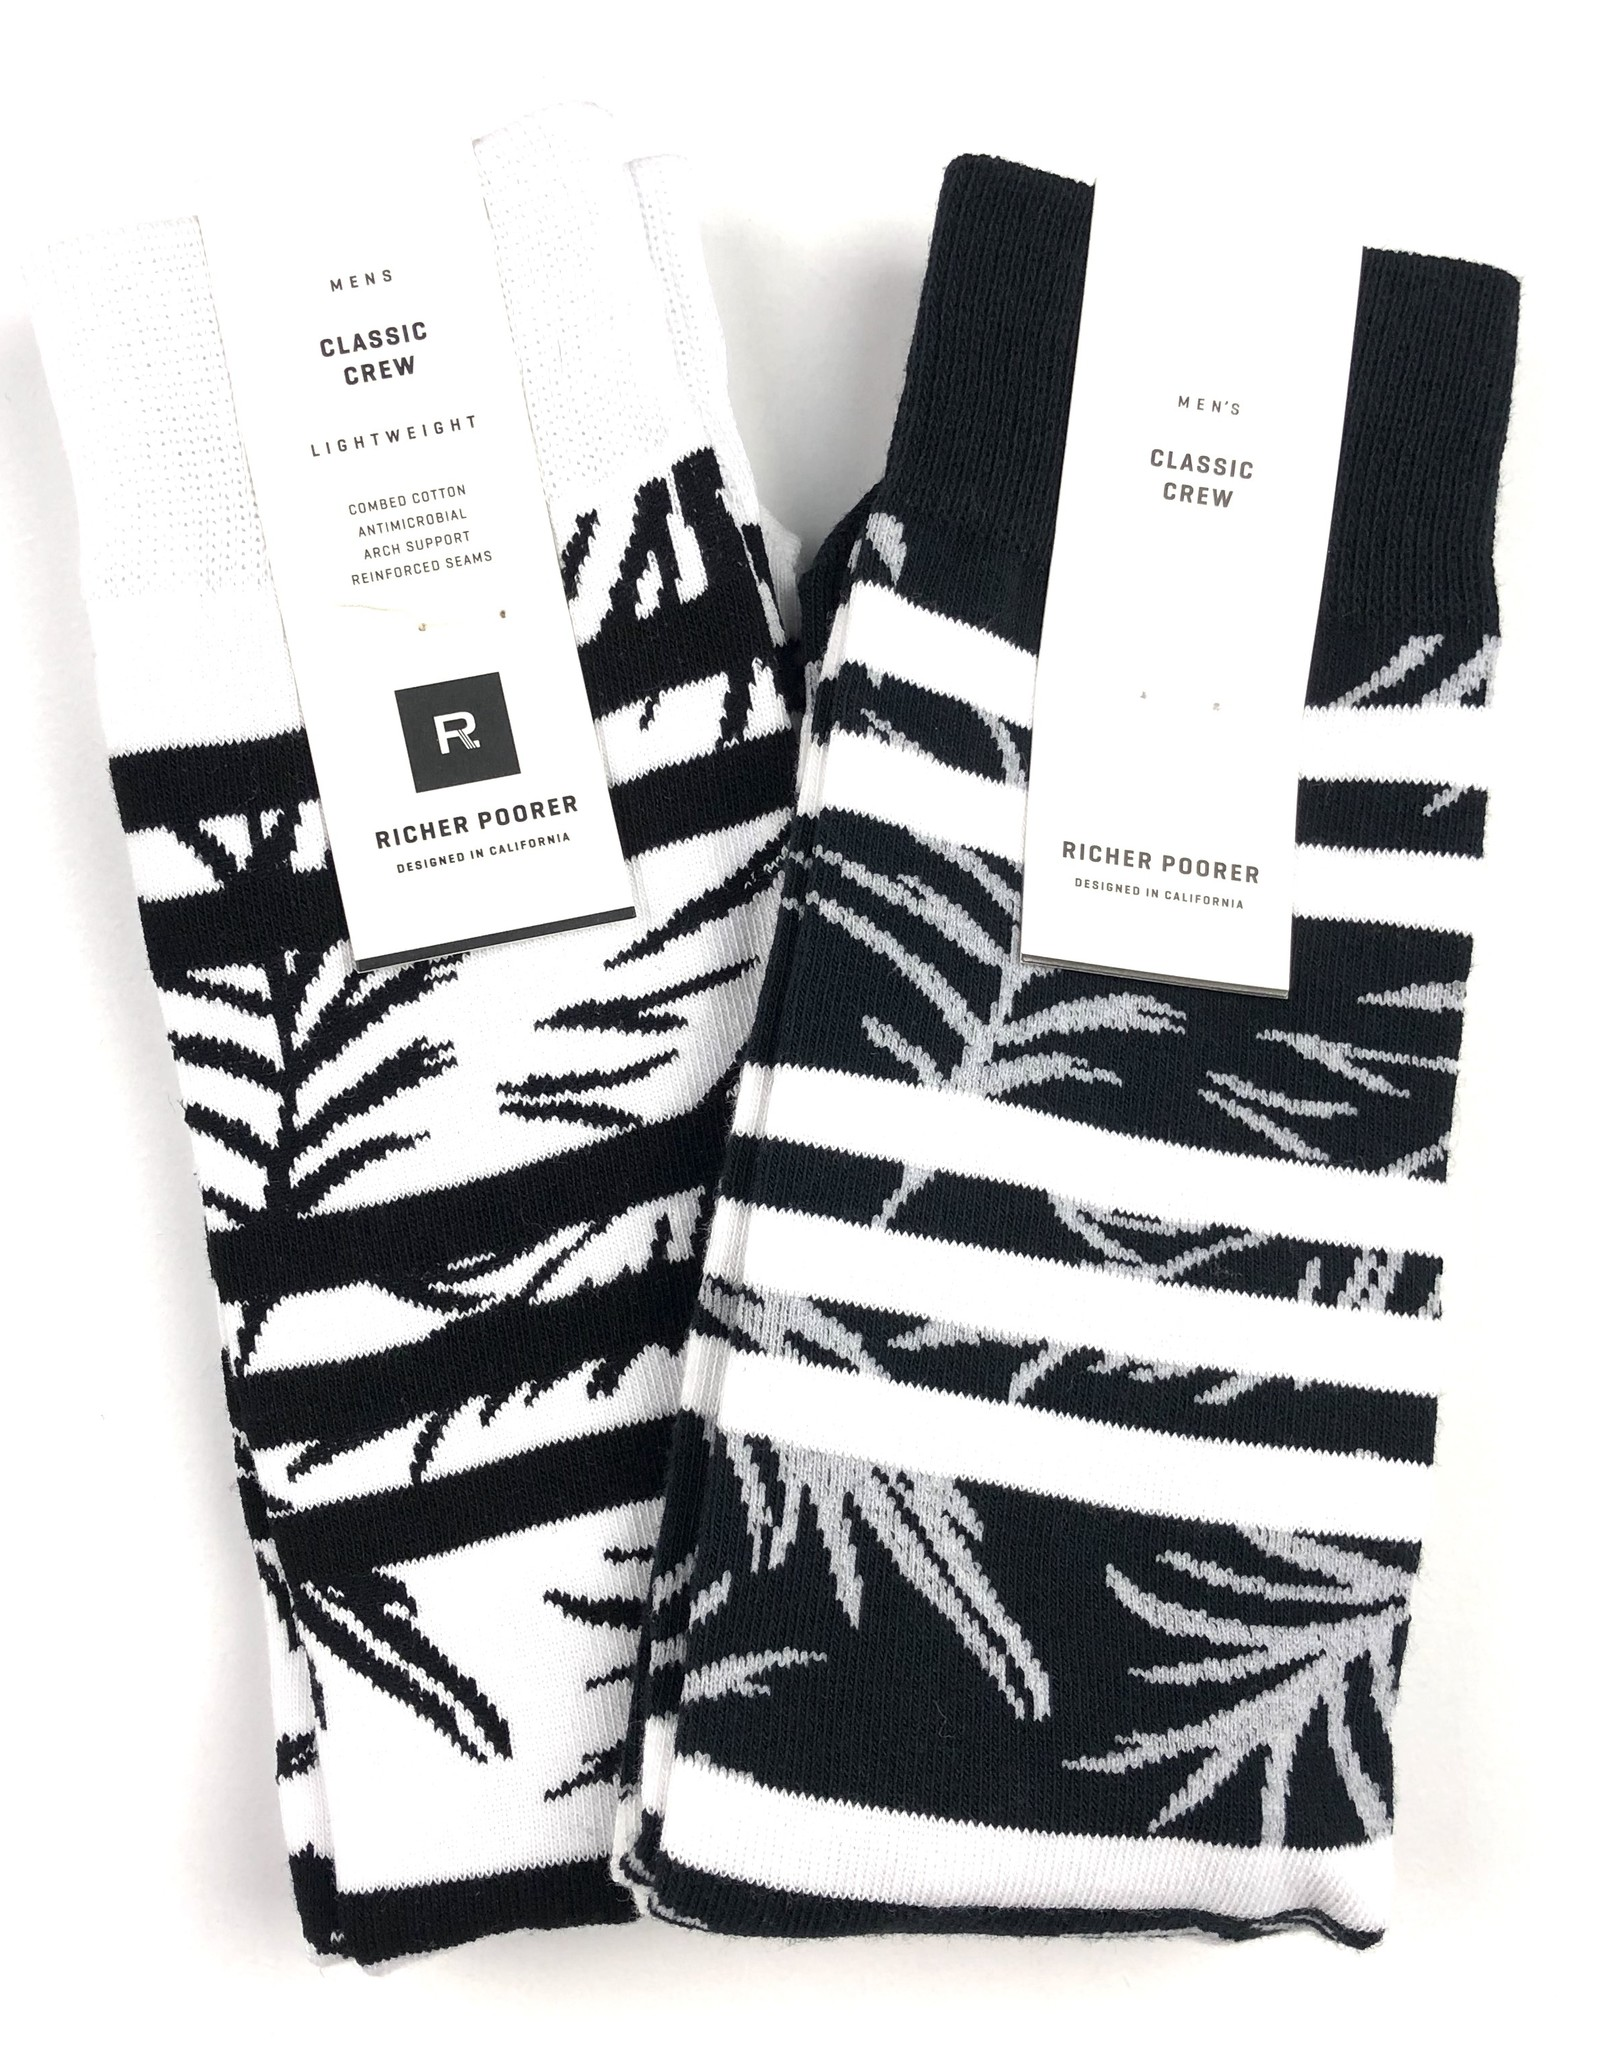 RICHER POORER CRUISE CREW SOCK - (ALL COLORS)